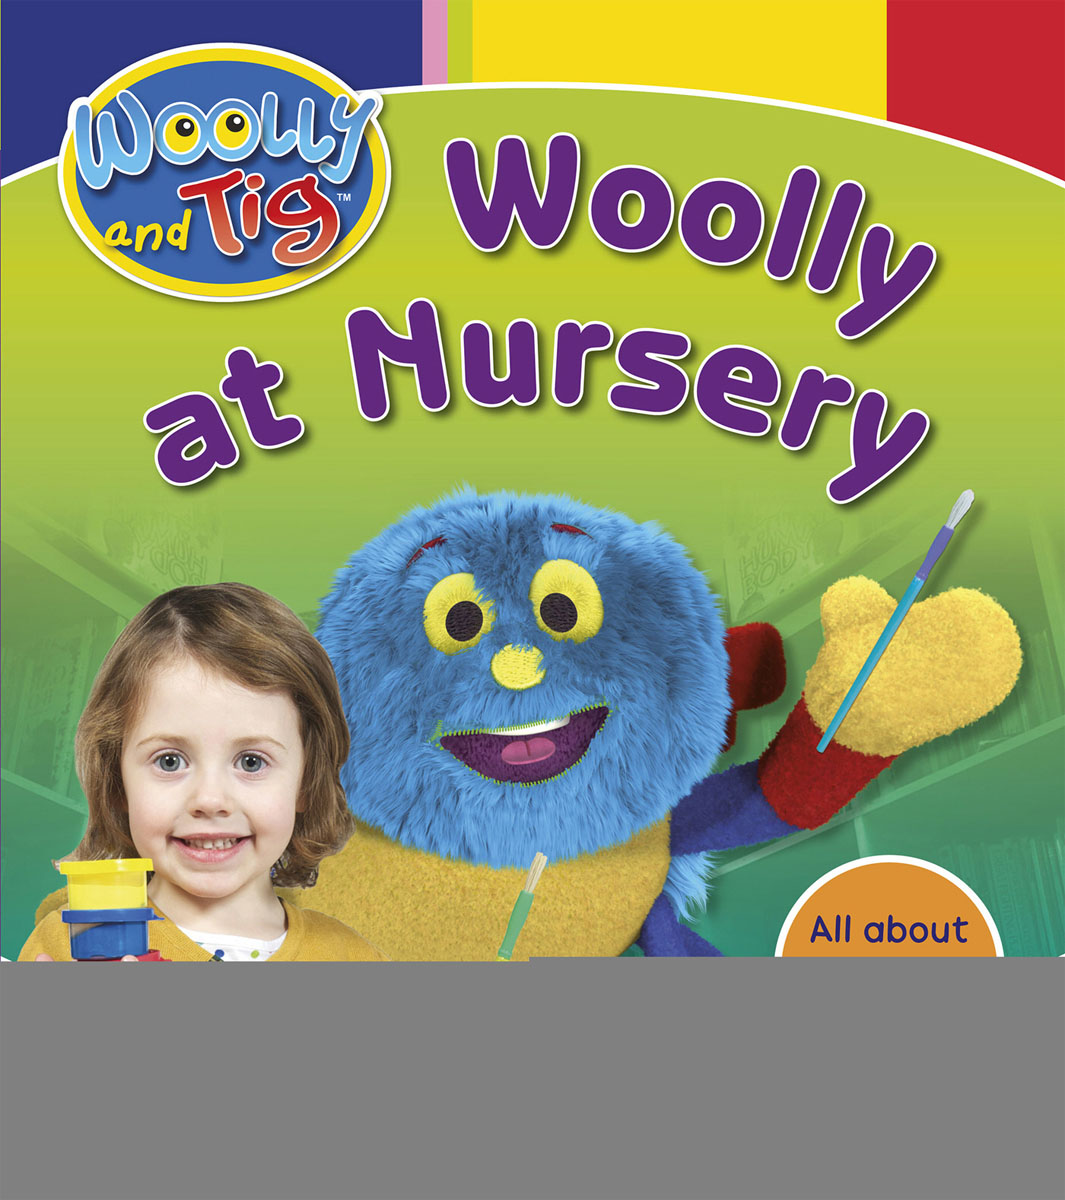 Woolly and Tig: Woolly at Nursery woolly boolly шарф